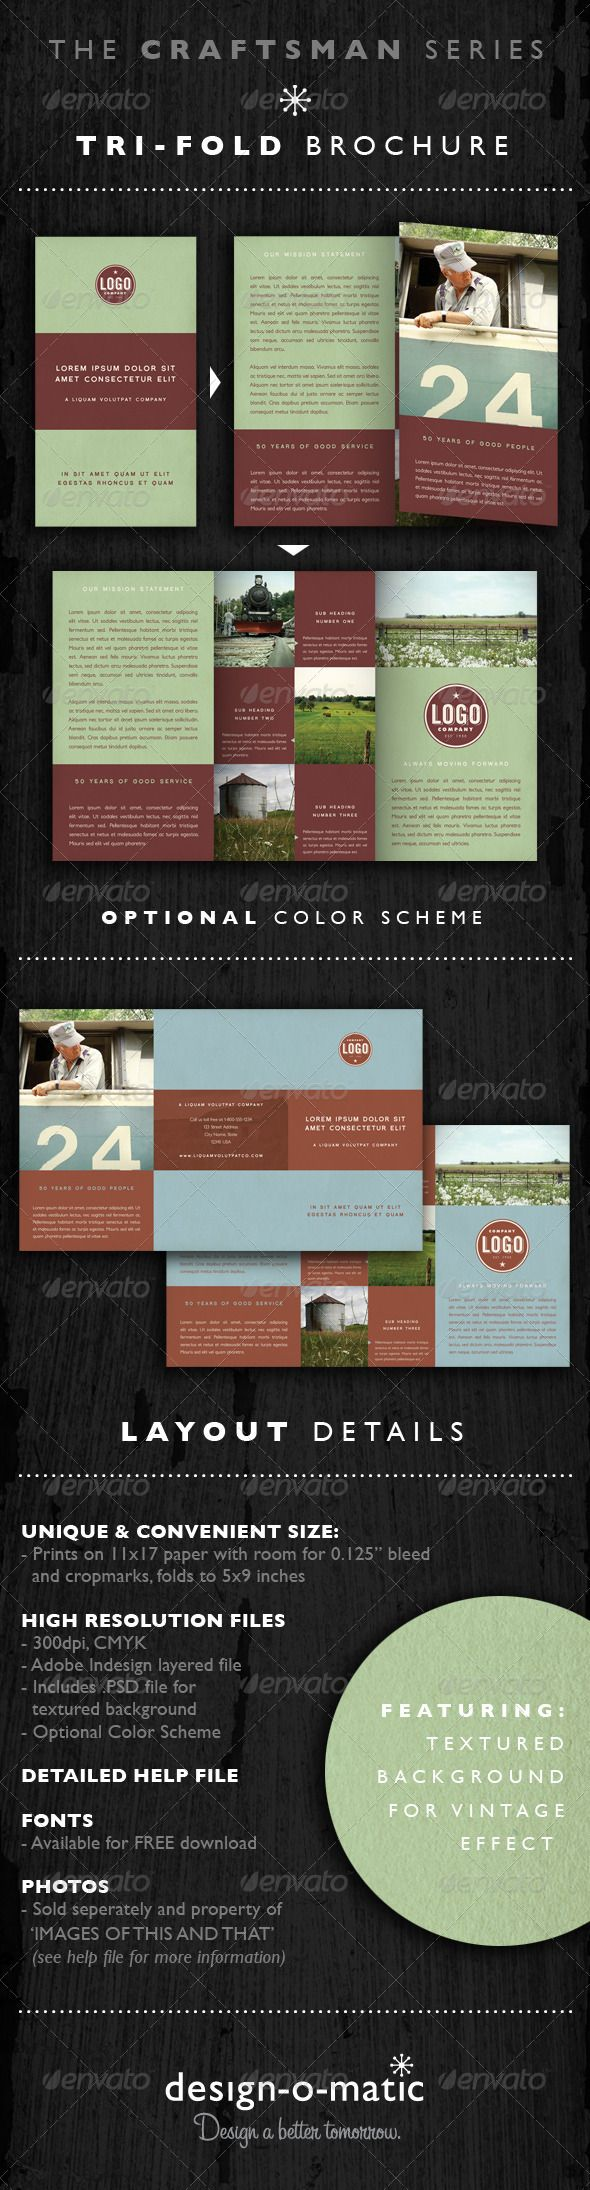 adobe indesign tri fold brochure template - 17 best images about cool designs of brochures on